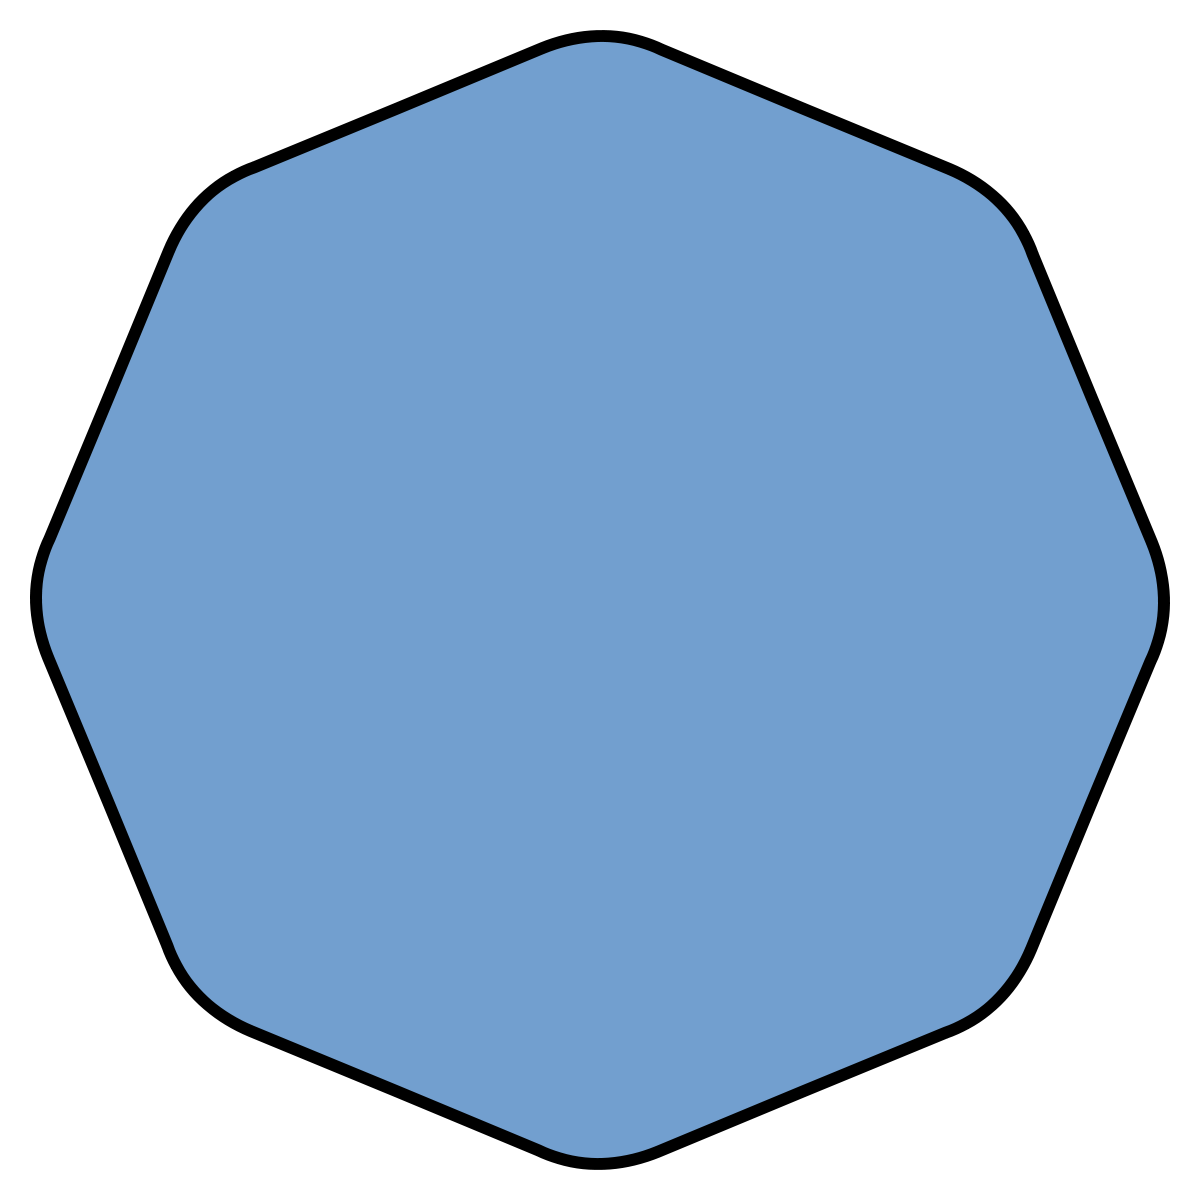 Sai transparent octagon. Smoothed wikipedia